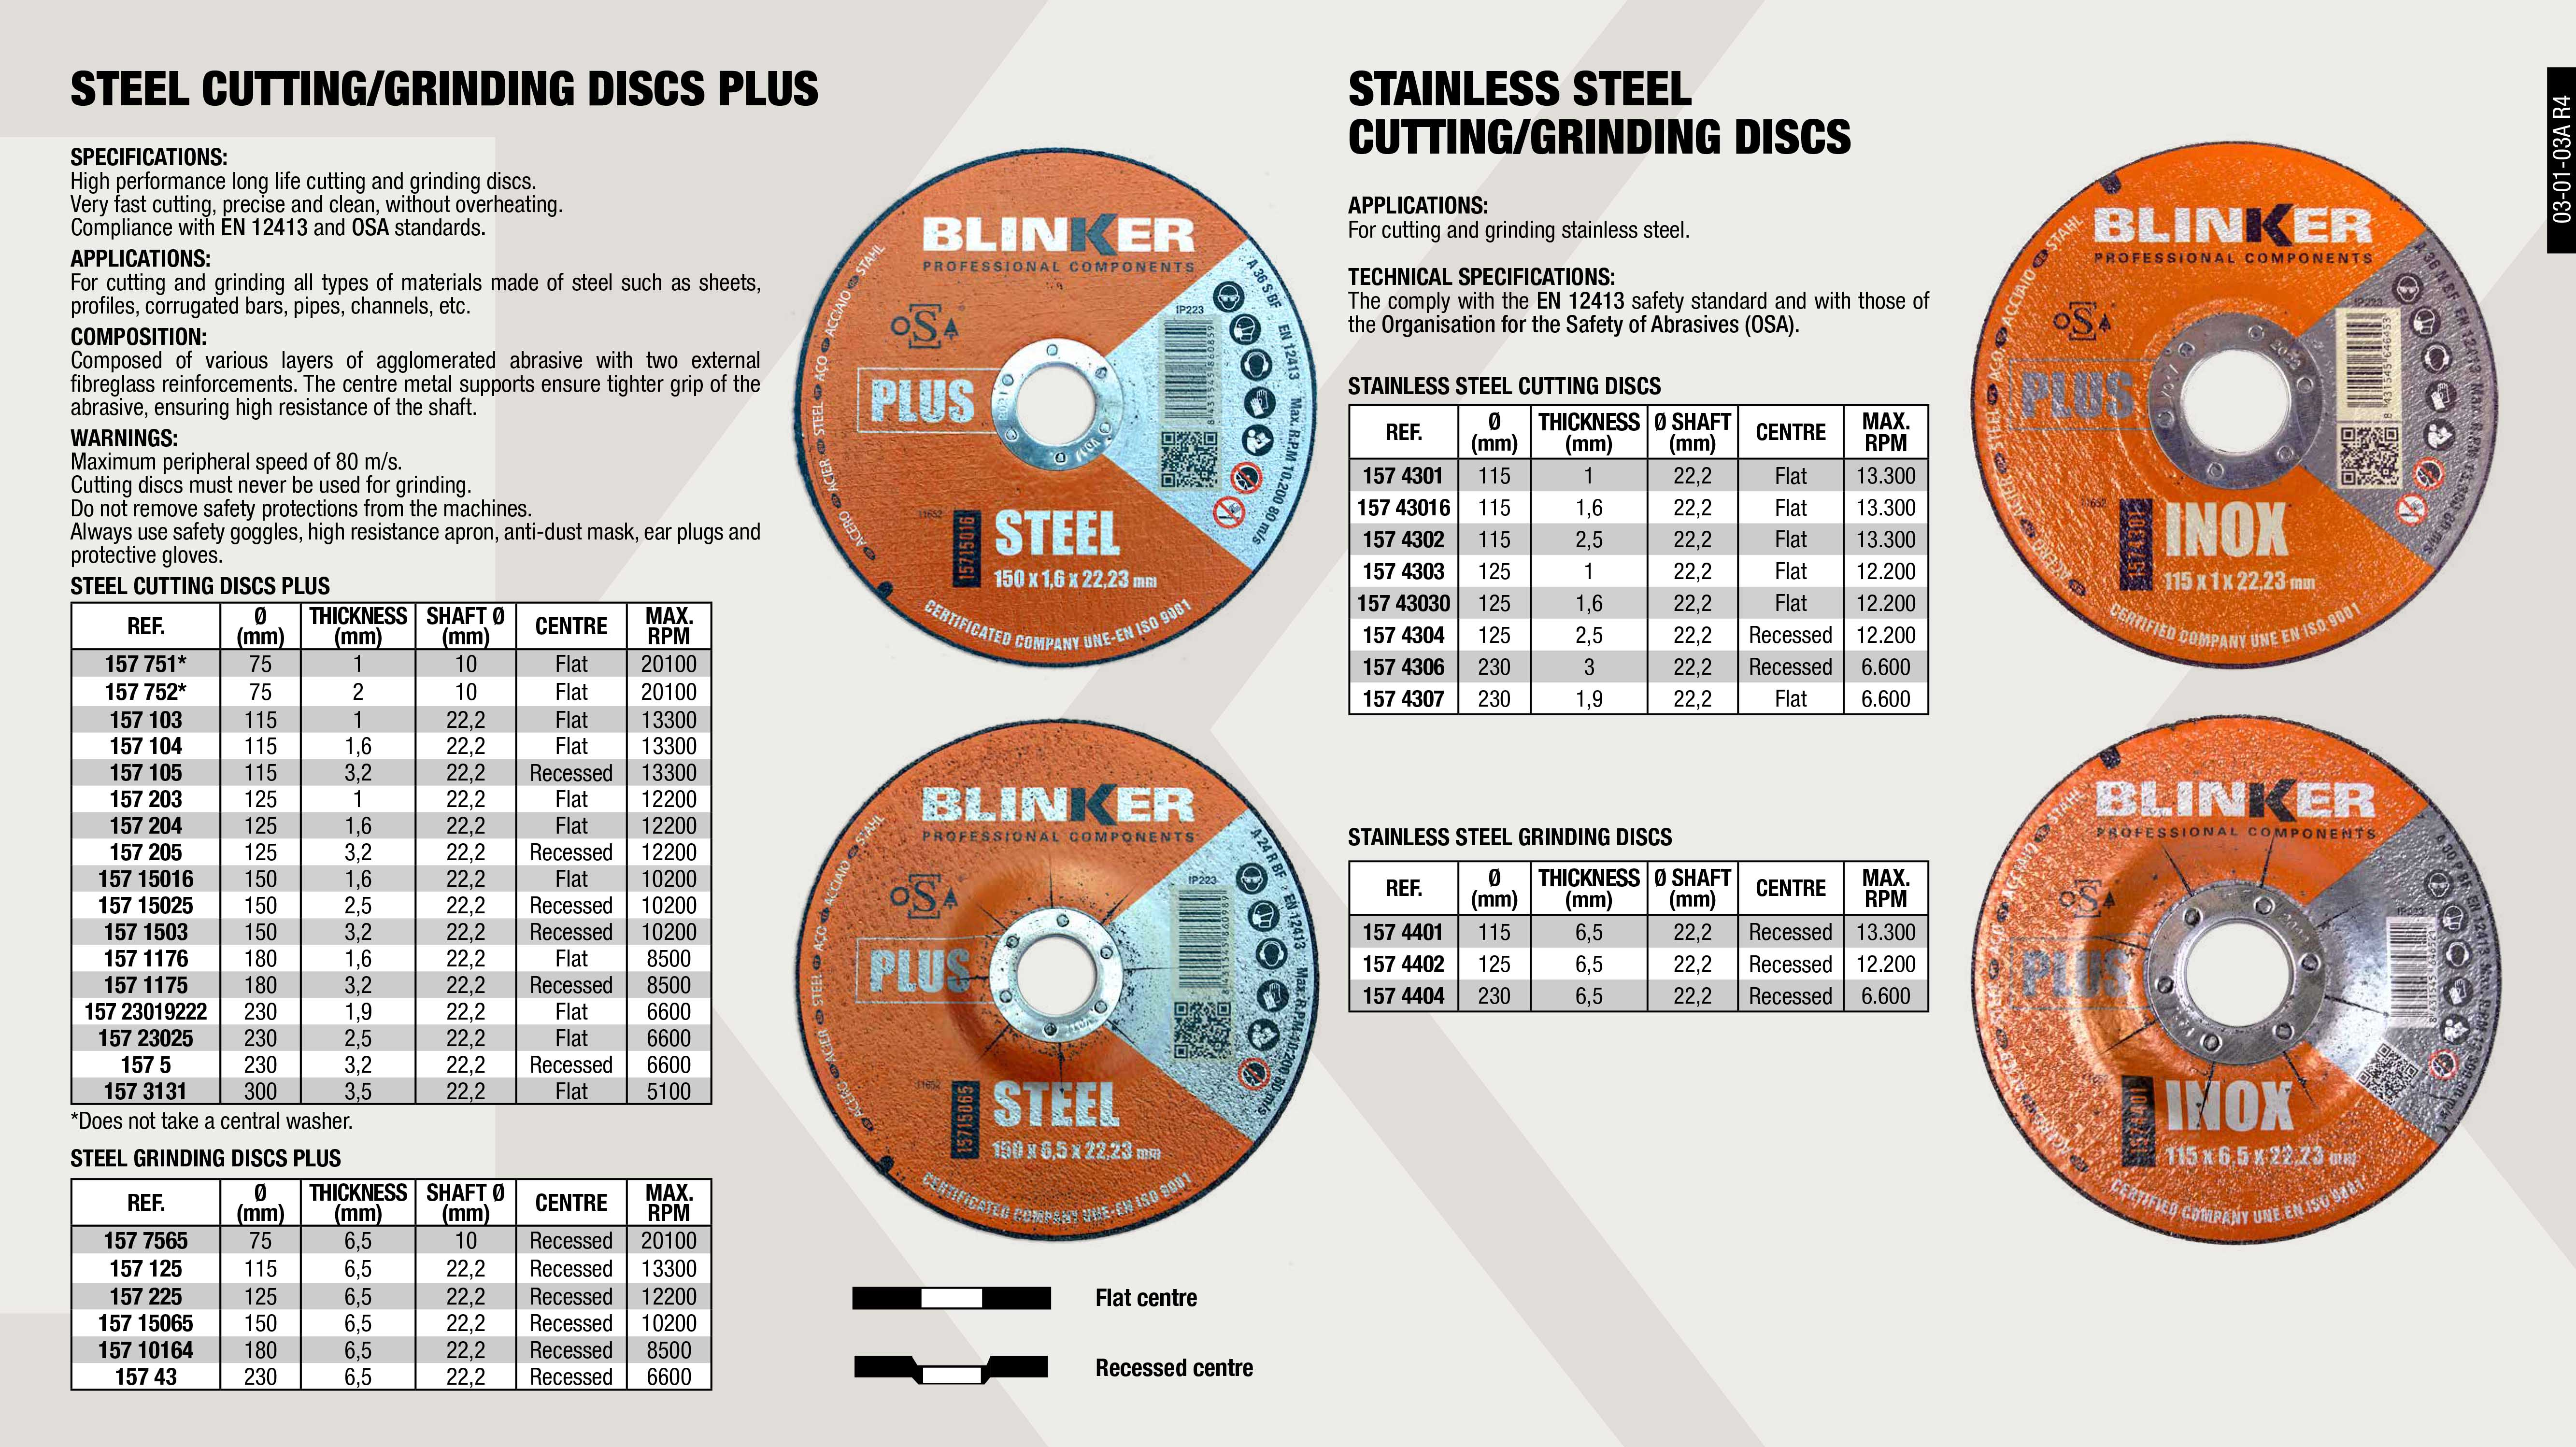 CUTTING DISC STEEL PLUS 125X3.2X22.2                        ,  									GRINDING DISC STAINLESS STEEL 180X6.5X22.2 PLUS             ,  									CUTTING DISC STEEL PLUS 125X1X22.2                          ,  									CUTTING DISC STEEL PLUS 125X1.6X22.2                        ,  									CUTTING DISC STEEL PLUS 230X3.2X22.2                        ,  									GRINDING DISC STEEL 150X6.5X22 PLUS                         ,  									GRINDING DISC STEEL 115X6.5X22 PLUS                         ,  									CUTTING DISC STEEL PLUS 150X3,2X22,2                        ,  									GRINDING DISC STAINLESS STEEL 75X6.5X10 PLUS                ,  									CUTTING DISC STEEL PLUS 115X1.6X22.2                        ,  									CUTTING DISC STAINLESS STEEL 125X0.8X22                     ,  									CUTTING DISC STAINLESS STEEL 115X2.5X22                     ,  									GRINDING DISC STAINLESS STEEL 115X6.5X22                    ,  									CUTTING DISC STEEL PLUS 150X1,6X22.2                        ,  									CUTTING DISC STEEL PLUS 75X2X10                             ,  									CUTTING DISC STEEL PLUS 300X3.5X22.2                        ,  									CUTTING DISC STAINLESS STEEL 125X2.5X22                     ,  									GRINDING DISC STAINLESS STEEL 125X6.5X22                    ,  									GRINDING DISC STAINLESS STEEL 230X6.5X22                    ,  									CUTTING DISC STEEL PLUS 150X2,5X22.2                        ,  									CUTTING DISC STEEL PLUS 180X3.2X22.2                        ,  									GRINDING DISC STAINLESS STEEL 230X6.5X22.2                  ,  									CUTTING DISC STEEL PLUS 230X1.9X22.2                        ,  									CUTTING DISC STEEL PLUS 180X1.6X22.2                        ,  									CUTTING DISC STAINLESS STEEL 115X0.8X22                     ,  									CUTTING DISC STEEL PLUS 115X1X22.2                          ,  									CUTTING DISC STEEL PLUS 115X3.2X22.2                        ,  									CUTTING DISC STAINLESS STEEL 180X2.5X22                     ,  									CUTTING DISC STAINLESS STEEL 230X3X22                       ,  									CUTTING DISC STAINLESS STEEL 230X1.9X22                     ,  									CUTTING DISC STEEL PLUS 75X1X10                             ,  									GRINDING DISC STEEL 125X6.5X22 PLUS                         ,